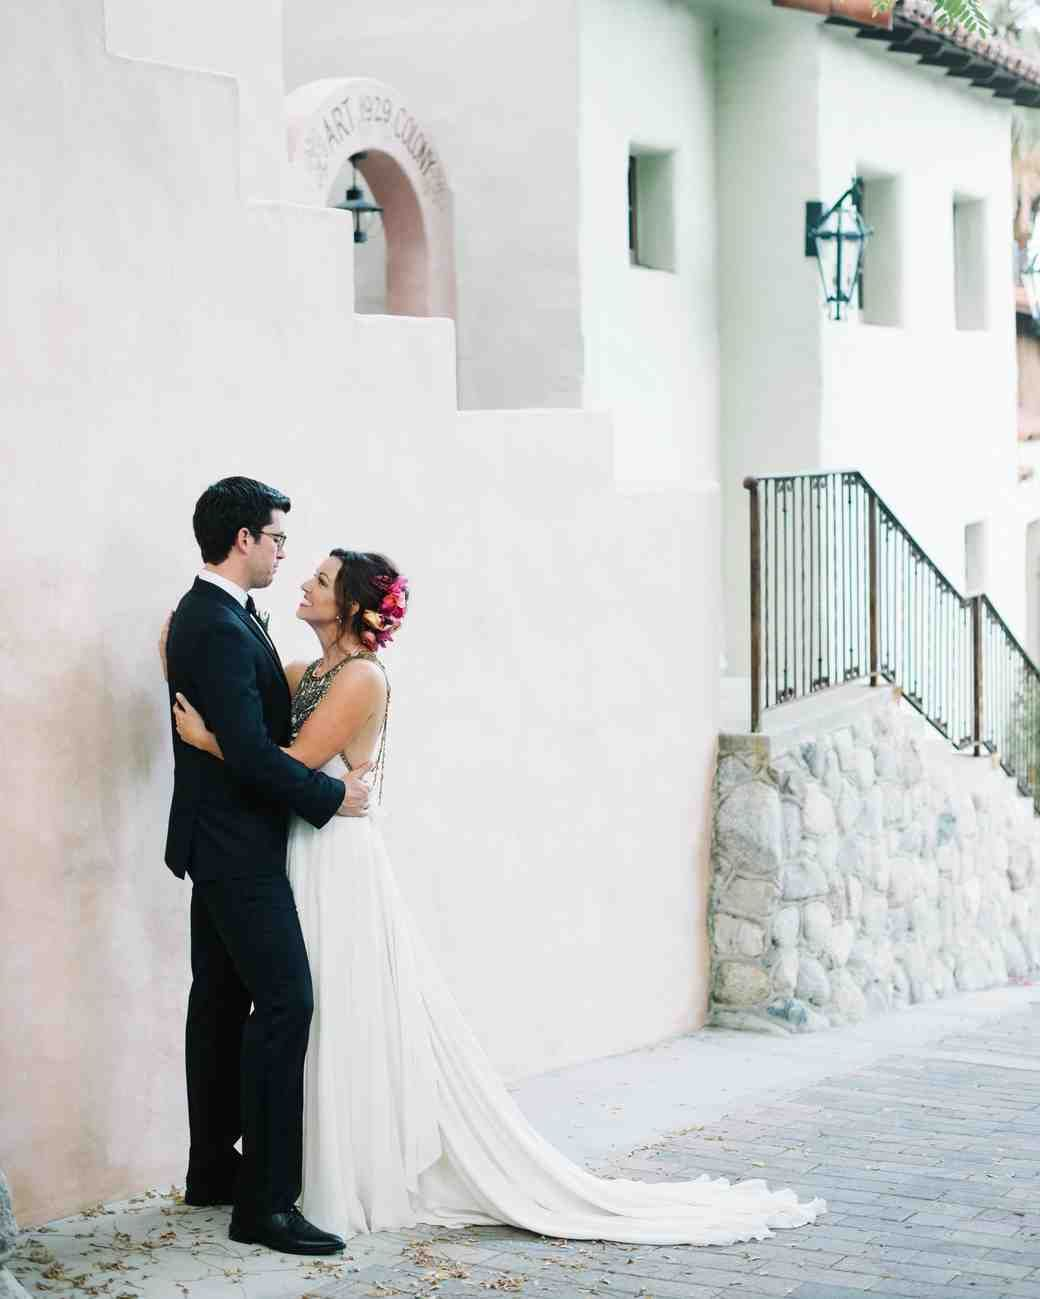 A cool eclectic wedding in the california desert the couple